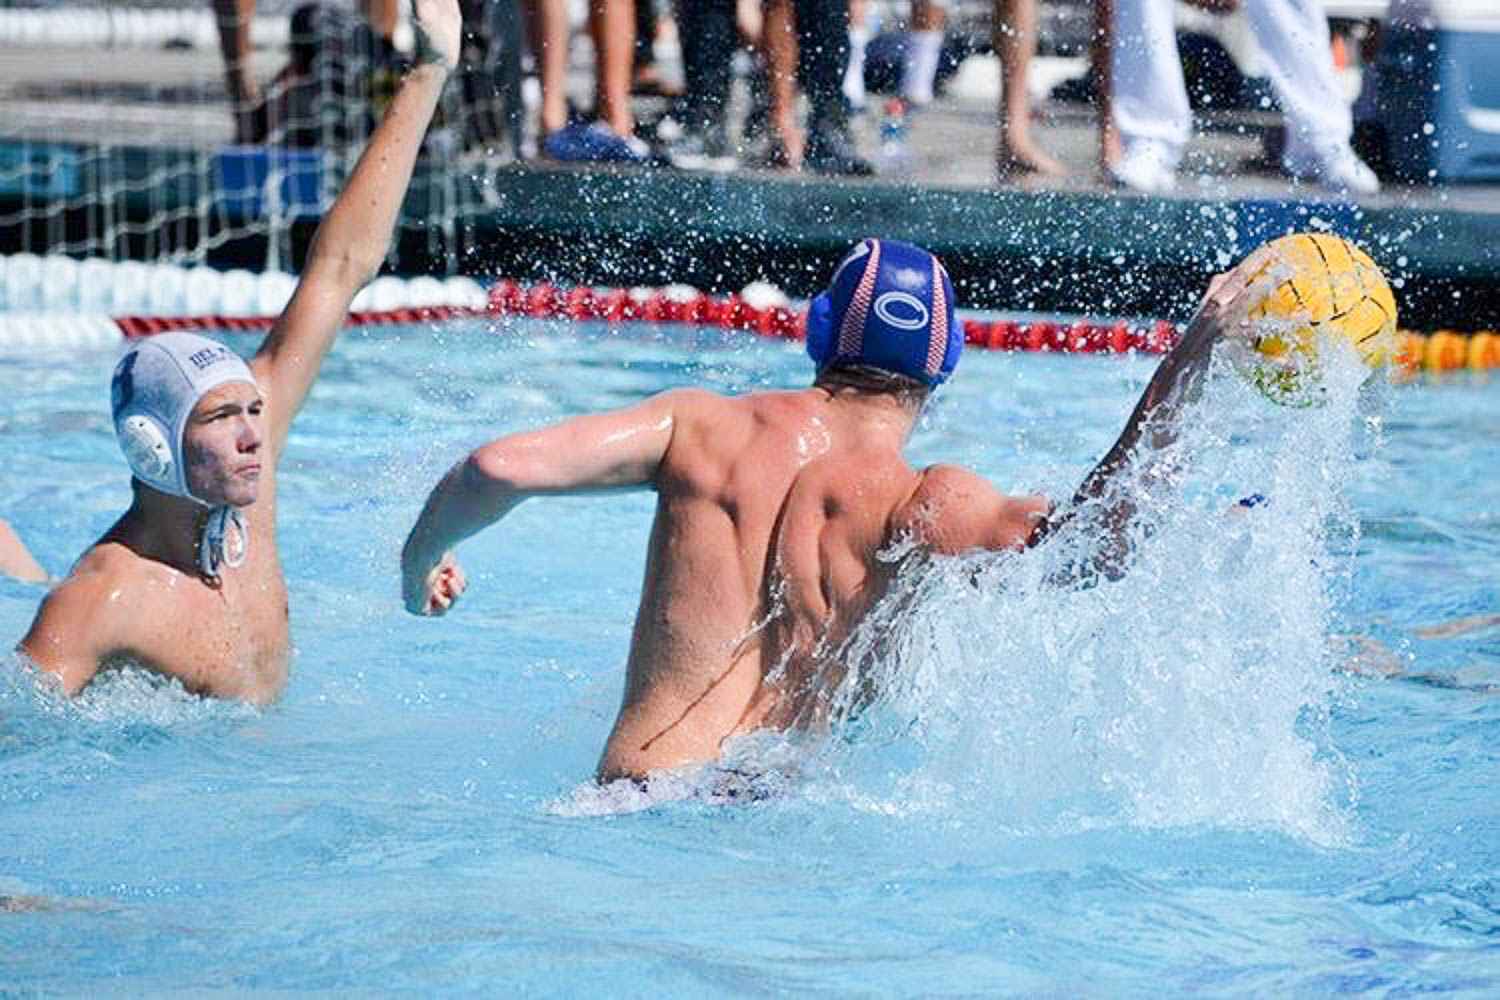 Max Miller (11) winds up to take a shot on goal. Unstoppable in the pool, Miller is a key player on SJHHS' boys water polo team.